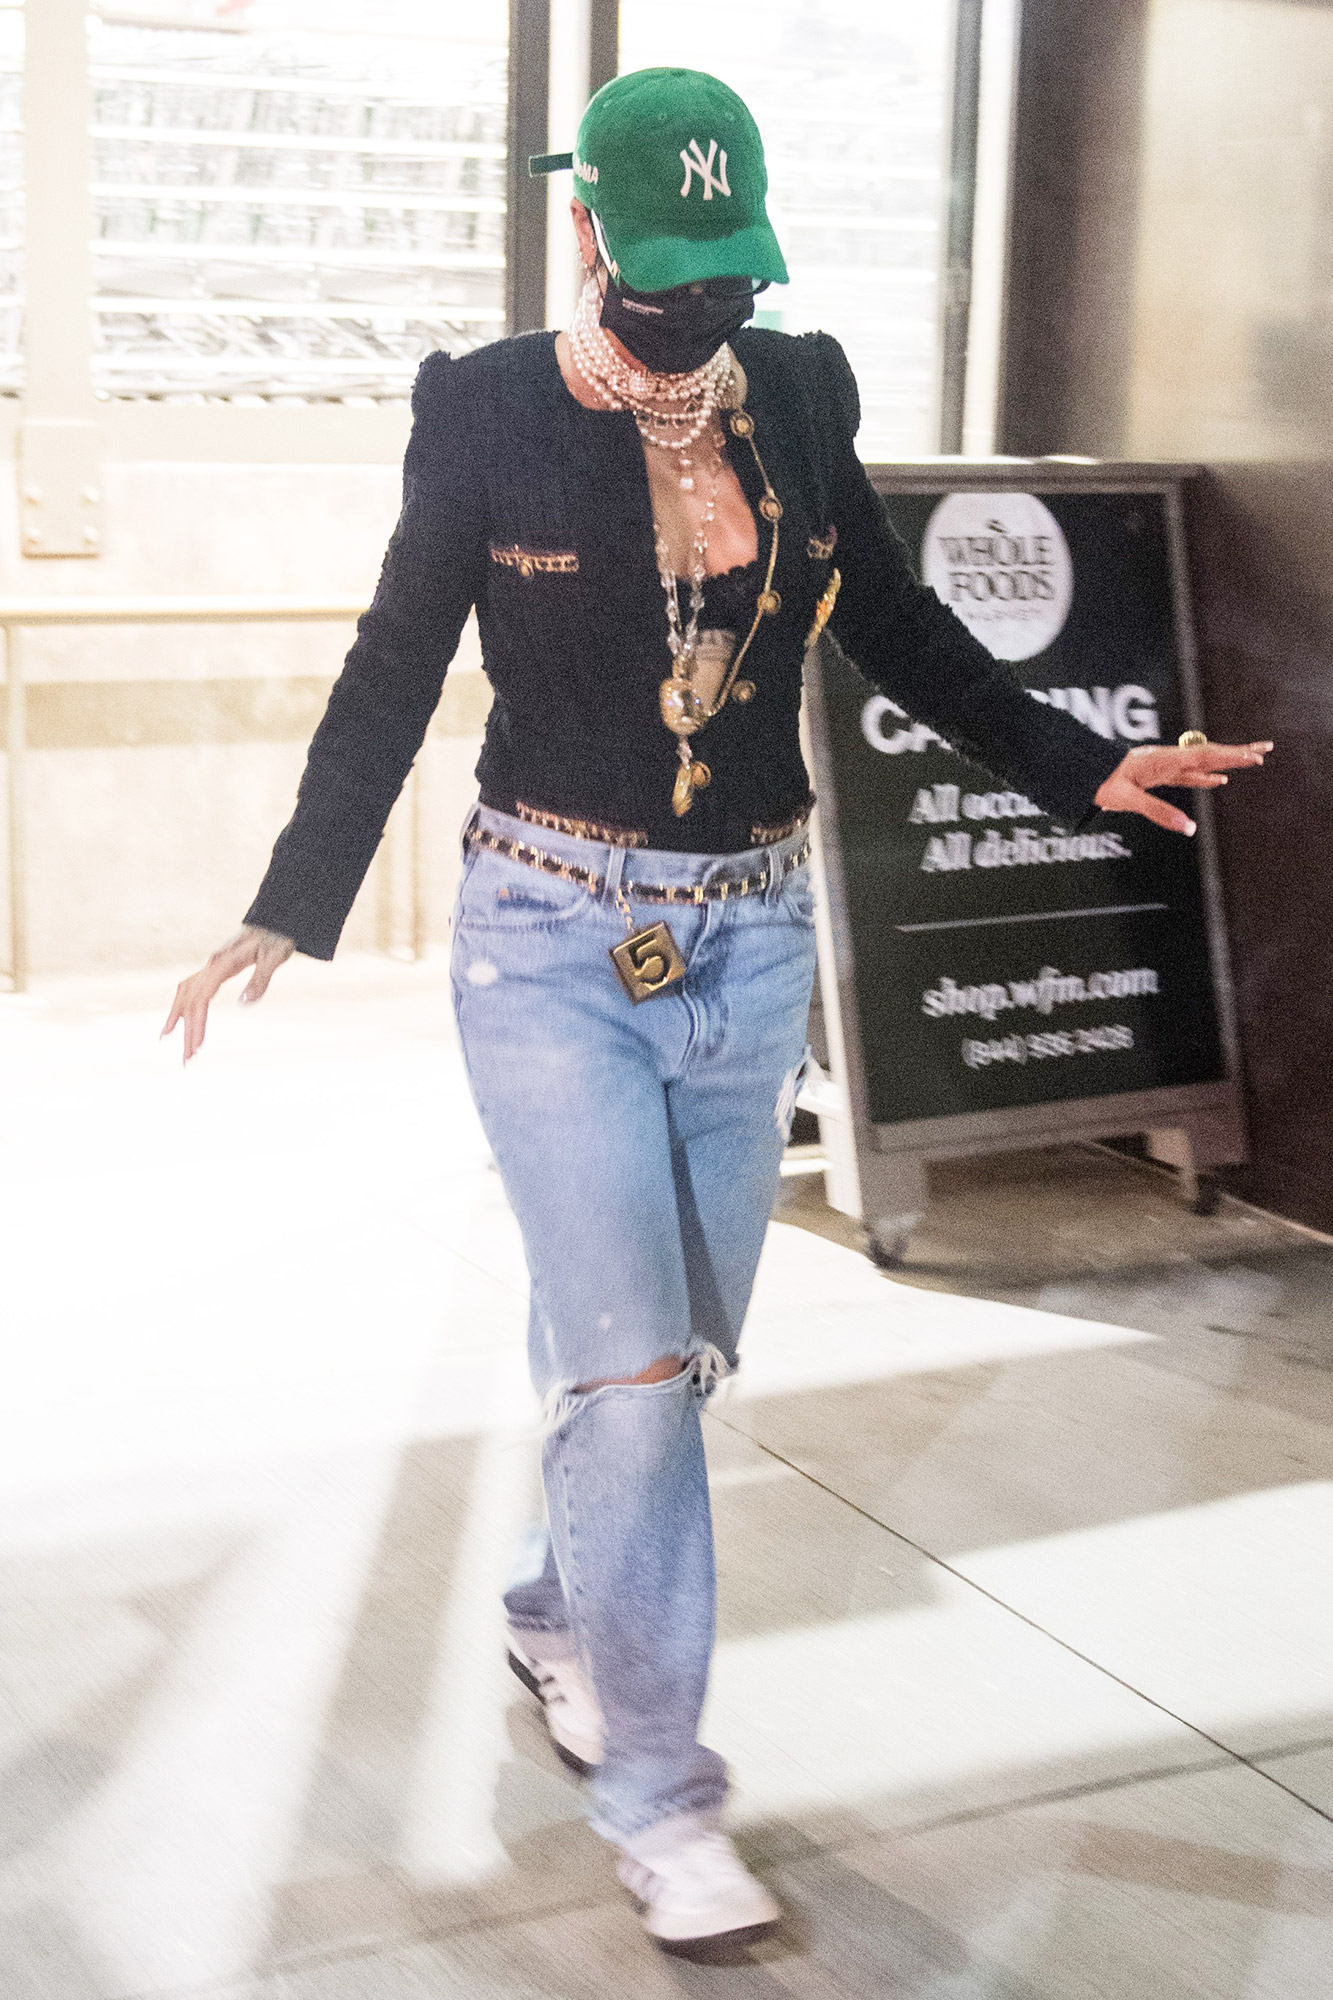 Rihanna shopping in Whole Foods with her Cousin, Tribeca, New York, USA - 15 Aug 2021